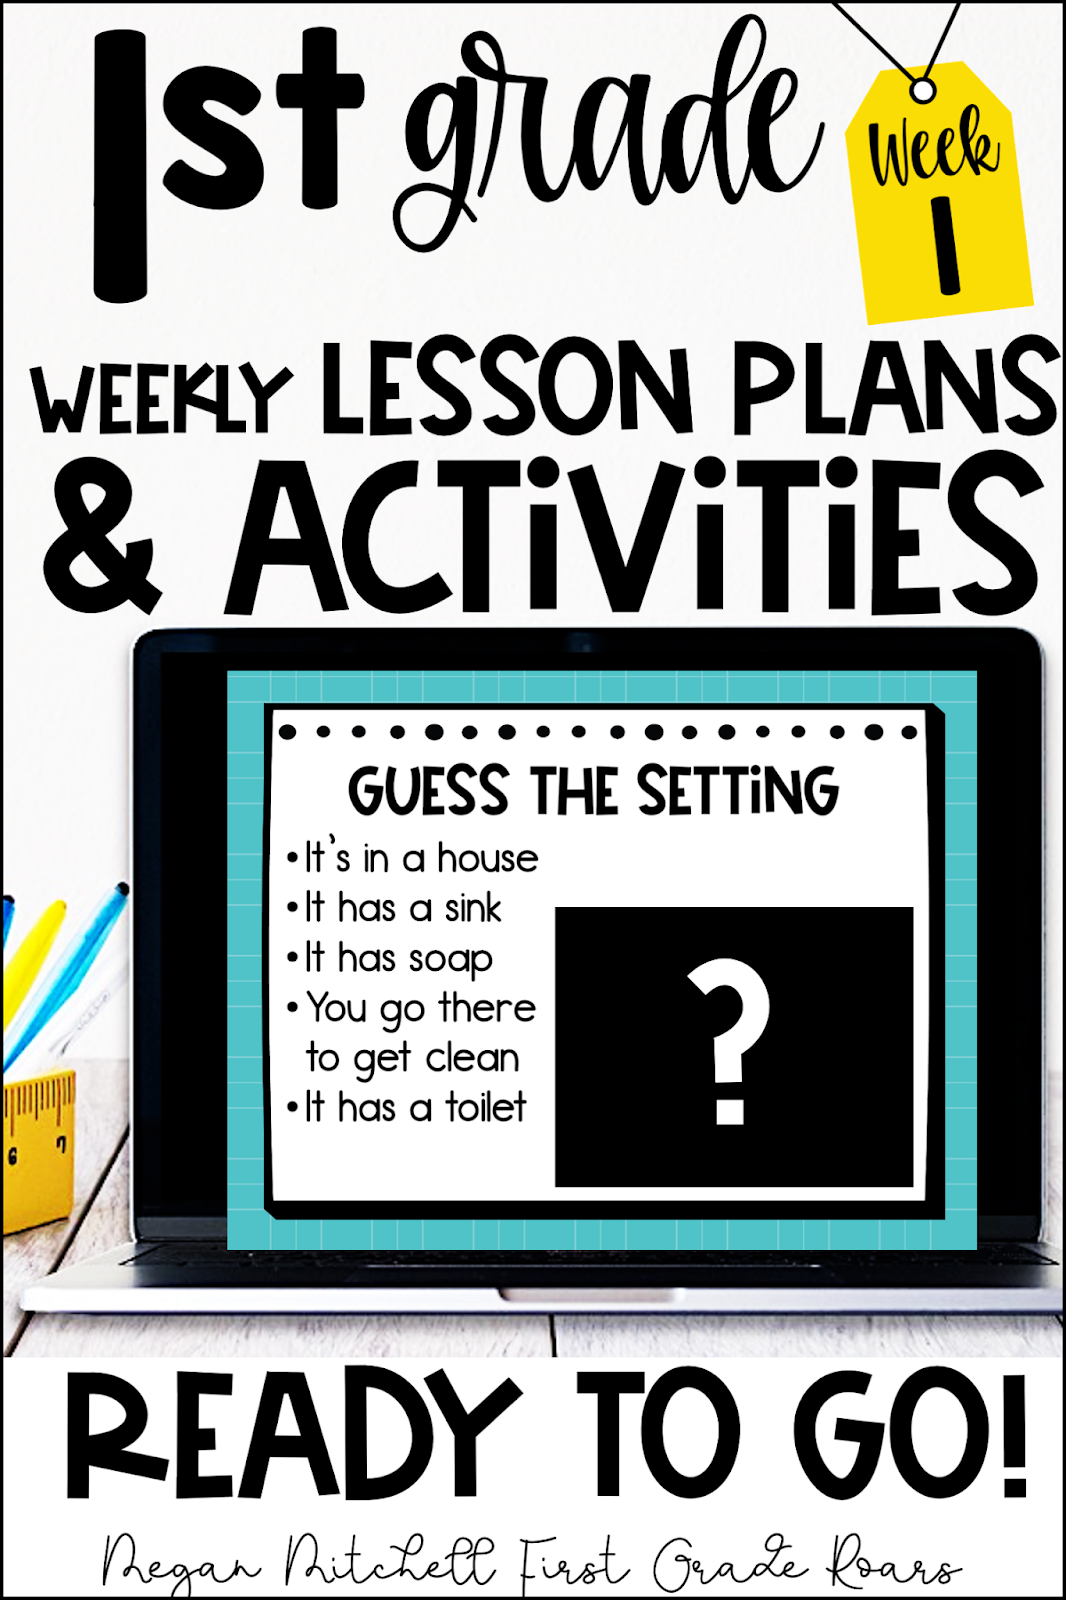 Are you having anxiety over going back to school. I have made a plan for dealing with this anxiety due to Covid. I am working on what I can control. I have made a curriculum map and lessons that I can use if we are in person or distance learning.